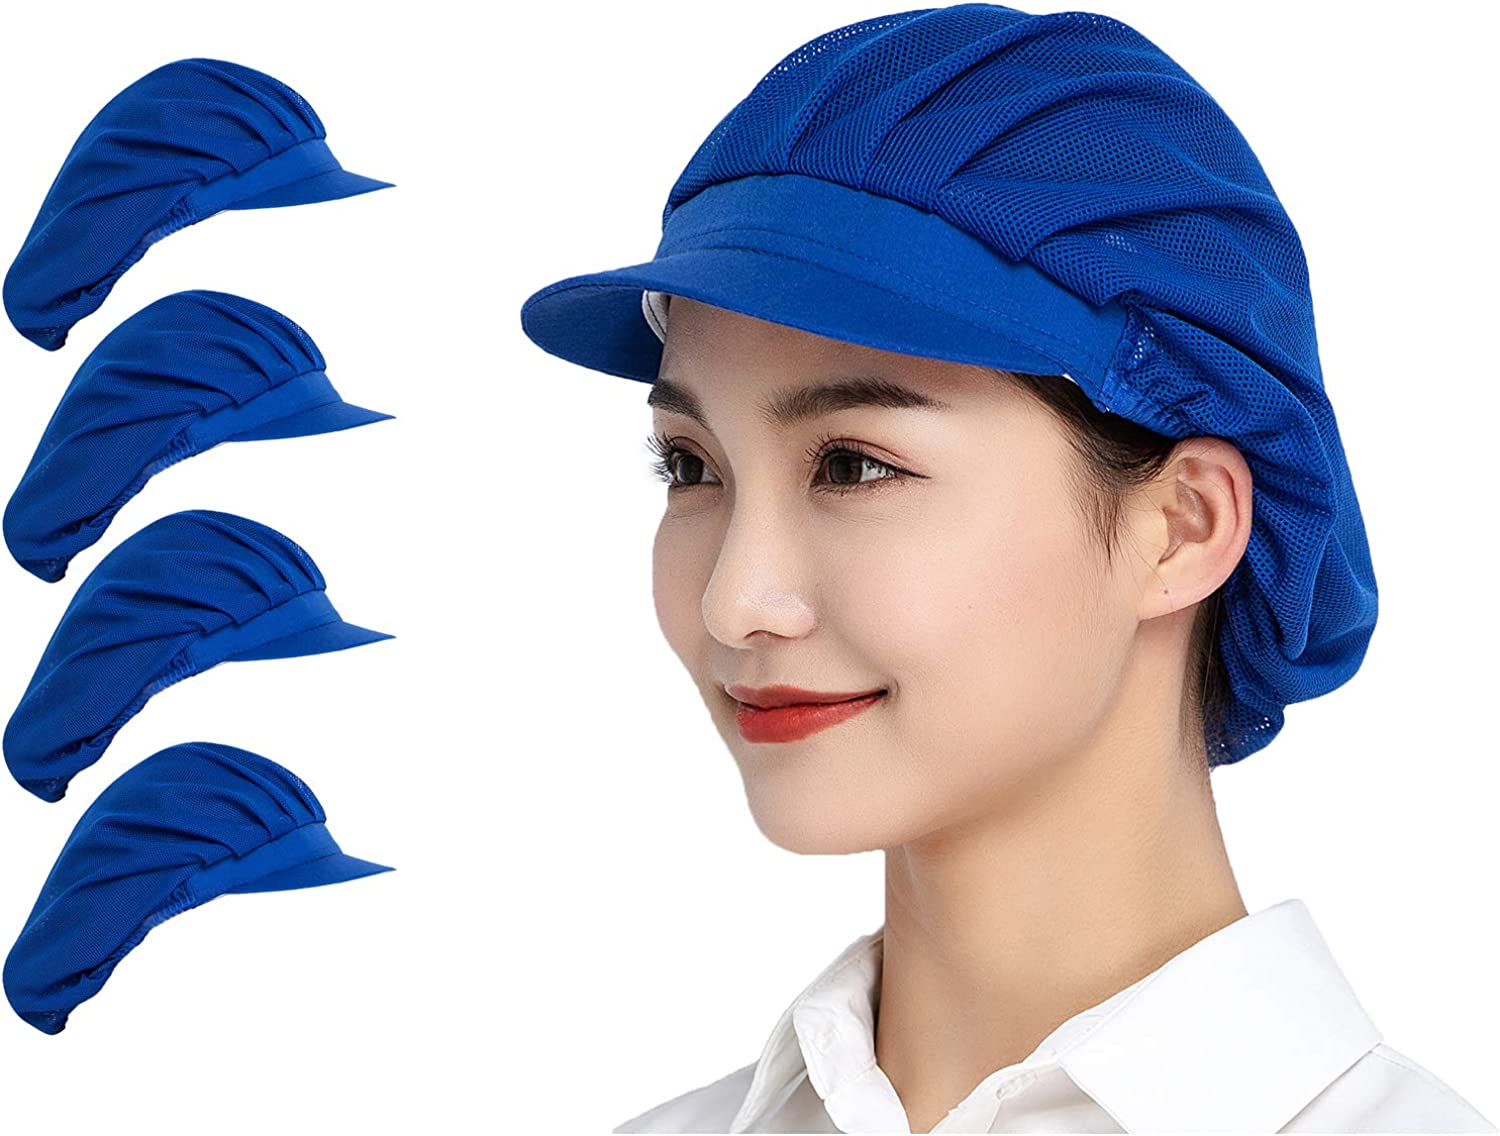 Jaspfct 1pc/4pcs Chef Hats-Kitchen Baker Cooking Hair Nets Food Service Caps for Adults